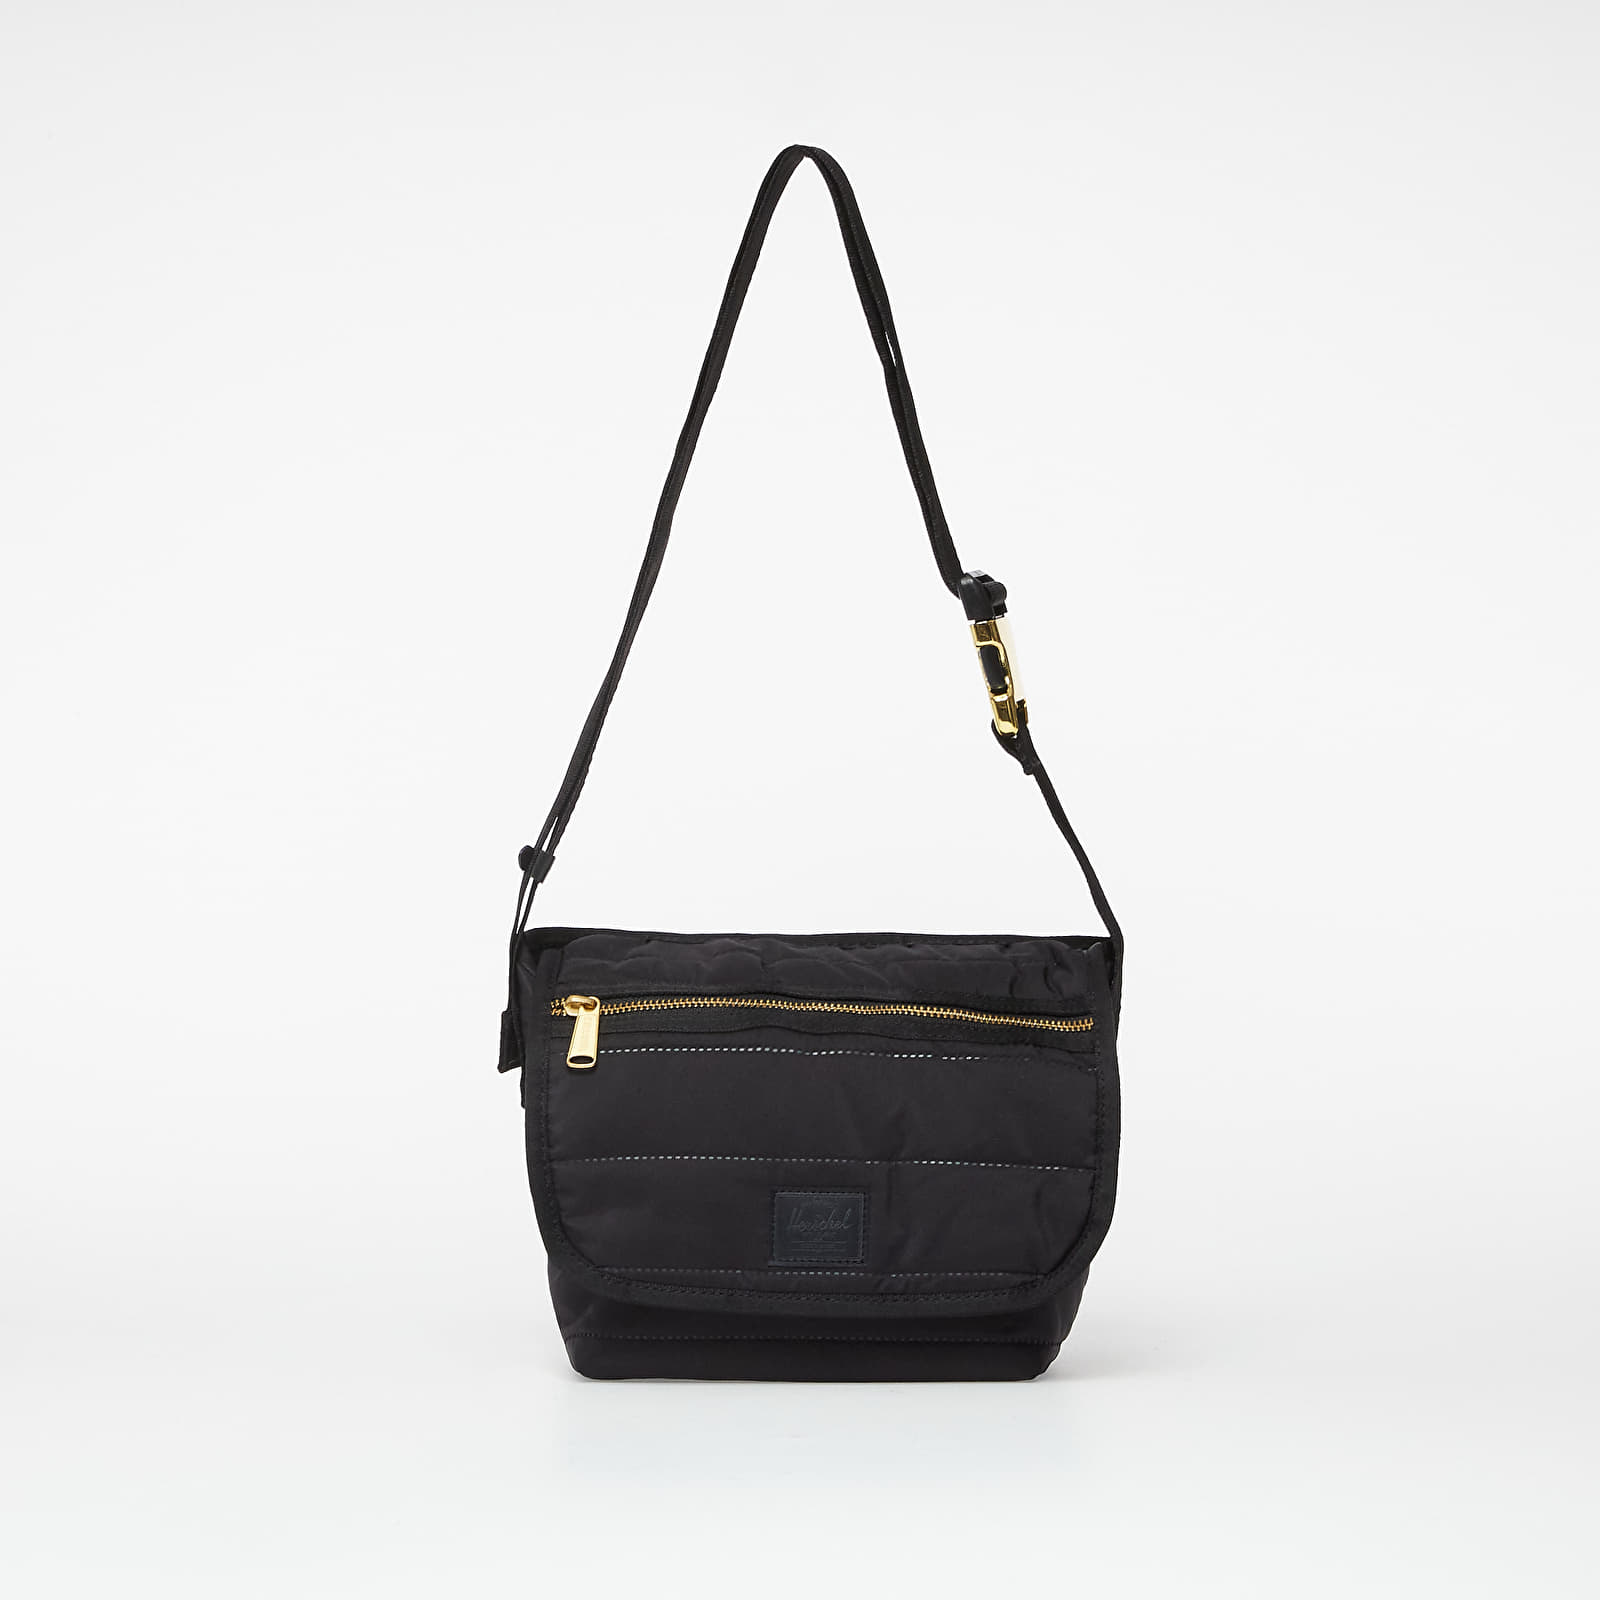 Bags Herschel Supply Co. Grade Messenger Mini Crossbody Black